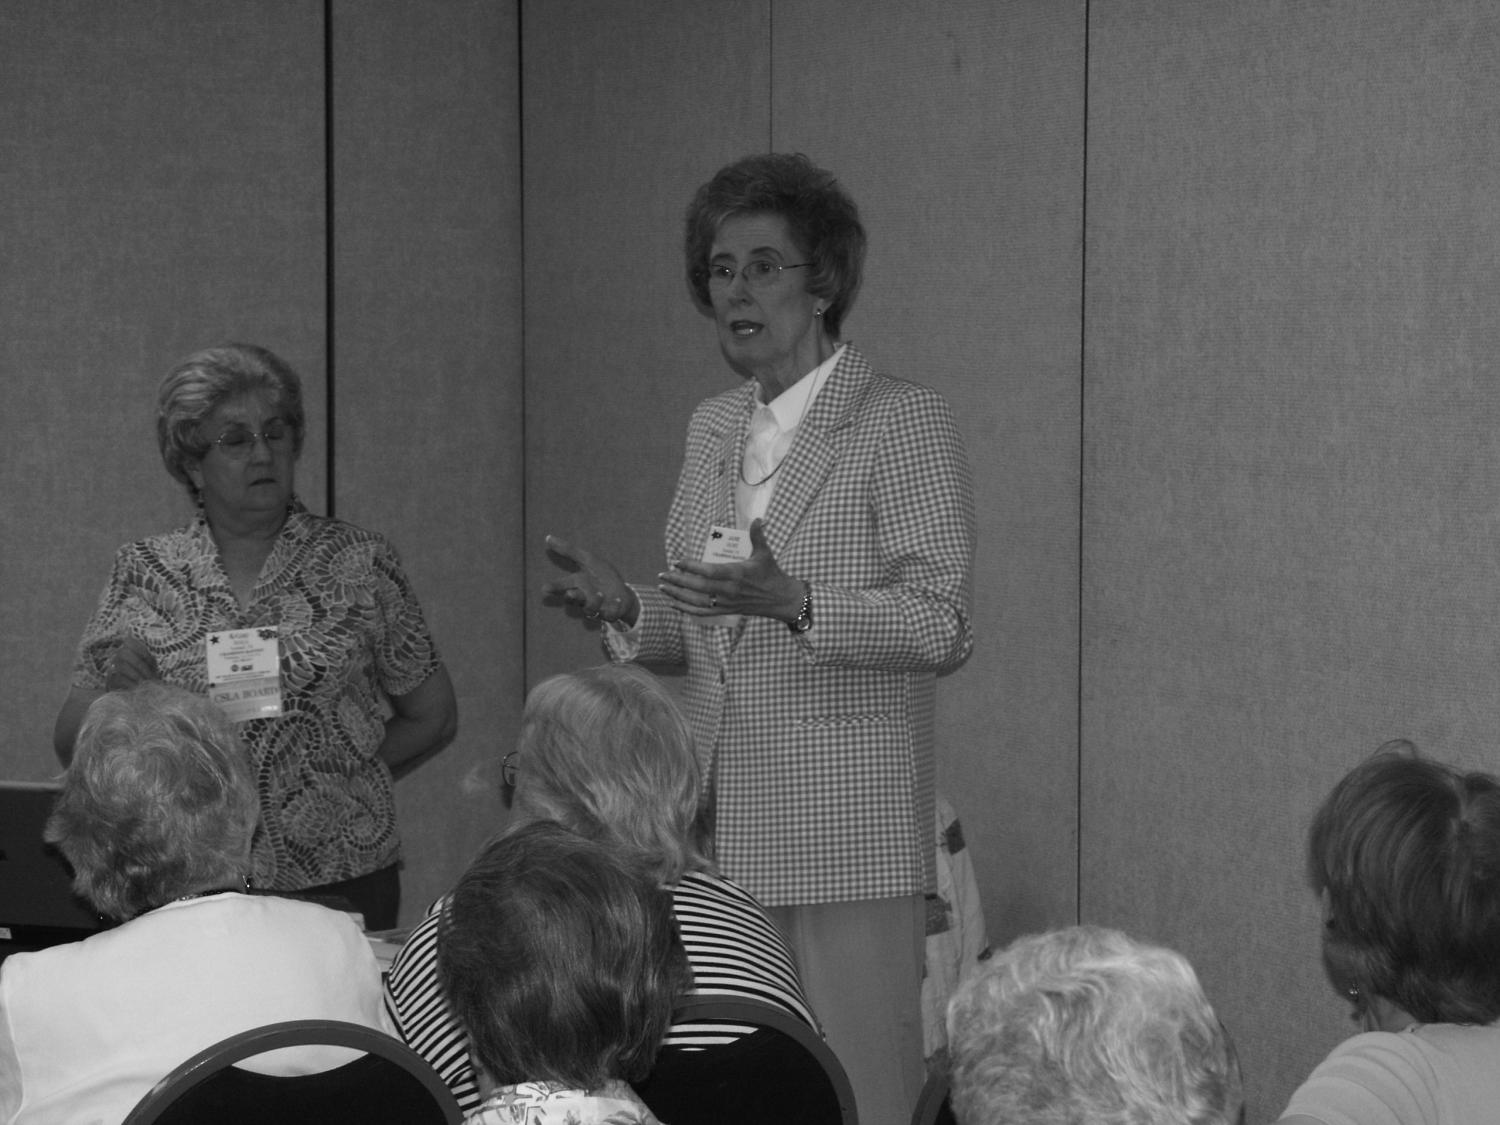 [Alrene Hall and Jane Hope speaking to attendees], Photograph of Alrene Hall (left) and Jane Hope (right), presenters giving a lecture on the use of Book Systems library software, Concourse, during a workshop. The two women are giving a workshop titled, Concourse and EZCat: An Introduction during the 40th anniversary Church and Synagogue Library Association conference held at the Inn at Valley Forge in King of Prussia, Pennsylvania.,